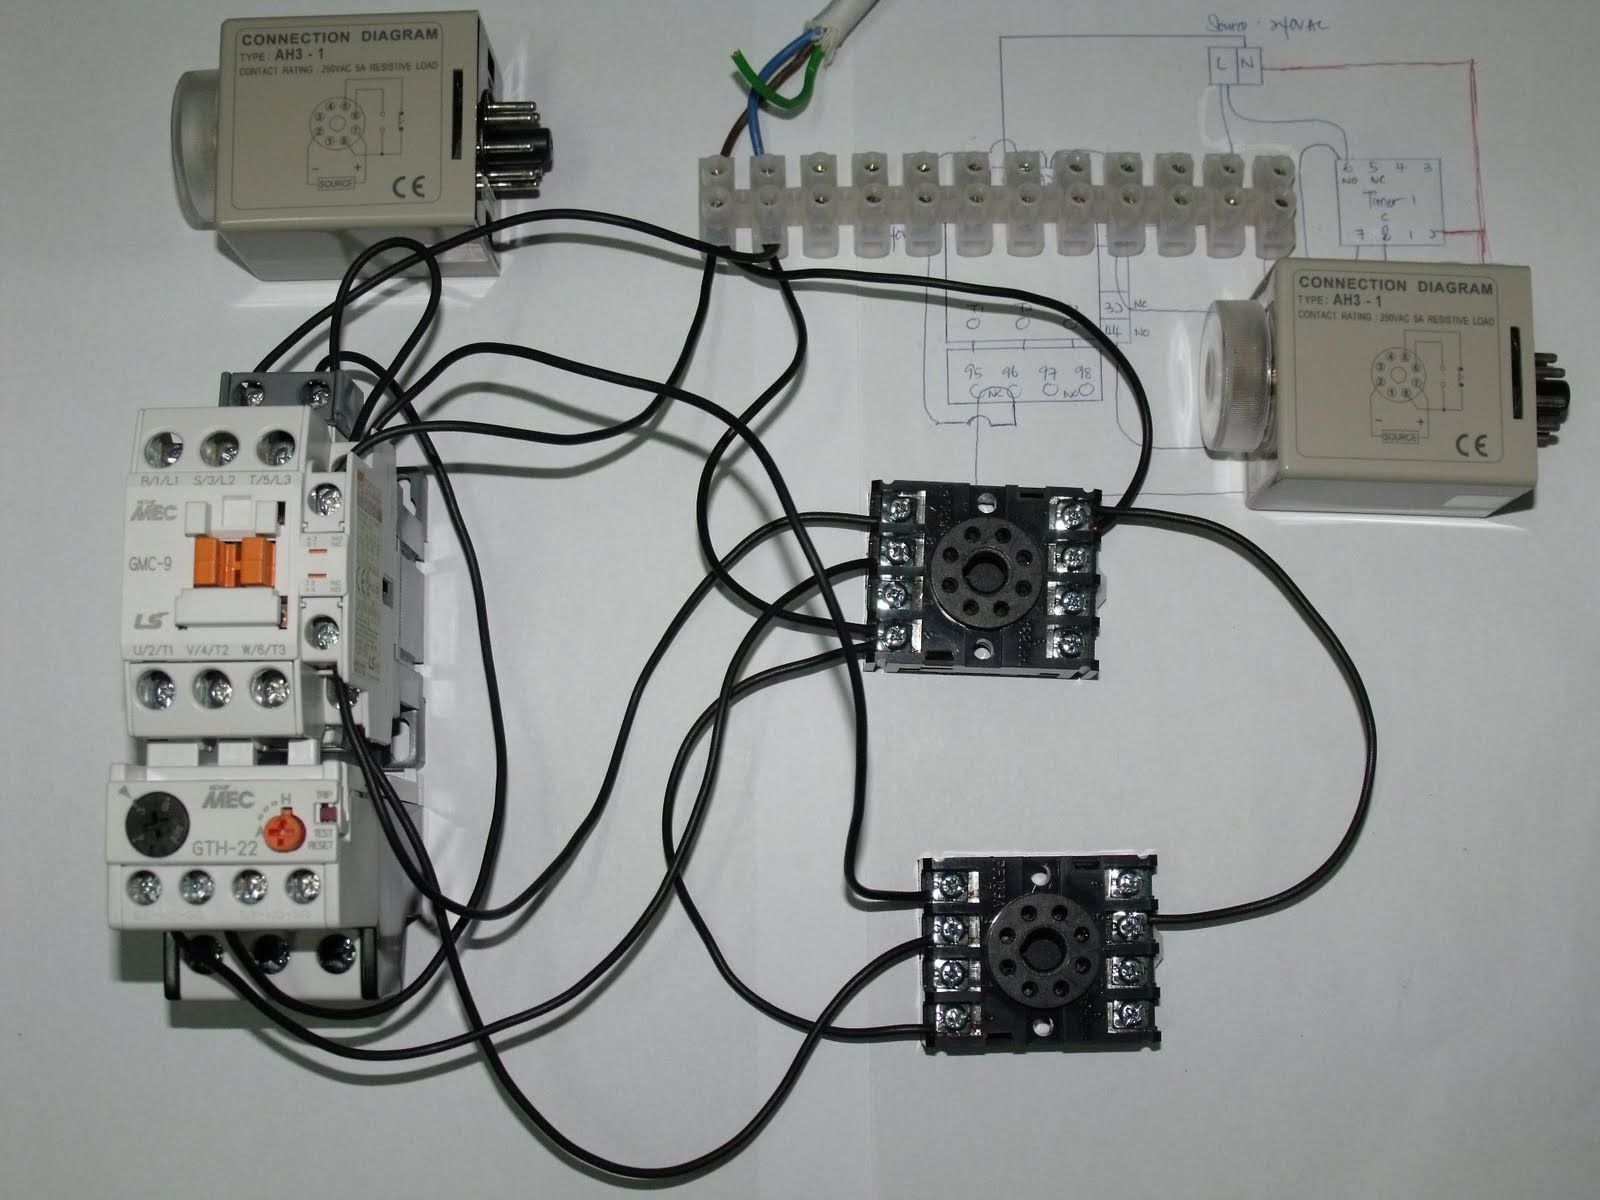 Contactor timer google search electrical pinterest crafts contactor timer google search cheapraybanclubmaster Choice Image